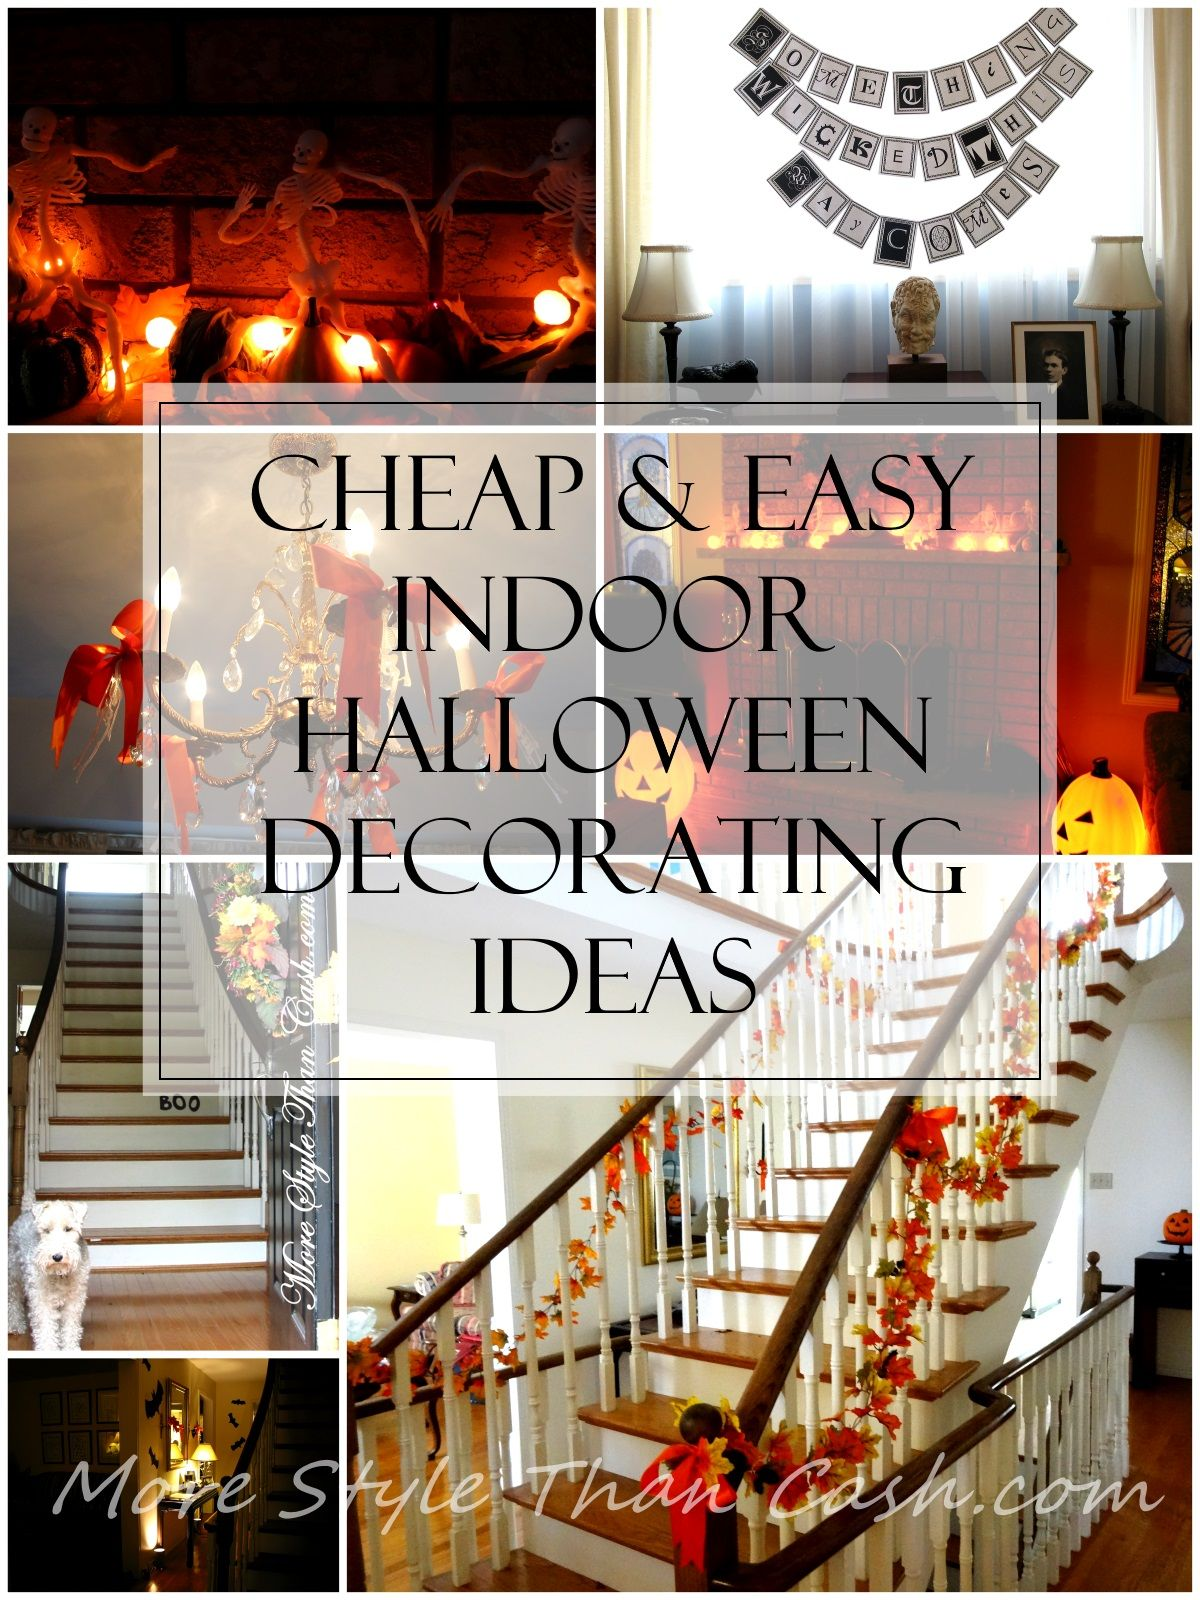 Cheap And Easy Indoor Halloween Decorating Ideas Halloween Decor Diy Indoor Cheap Halloween Decorations Halloween Decorations Indoor